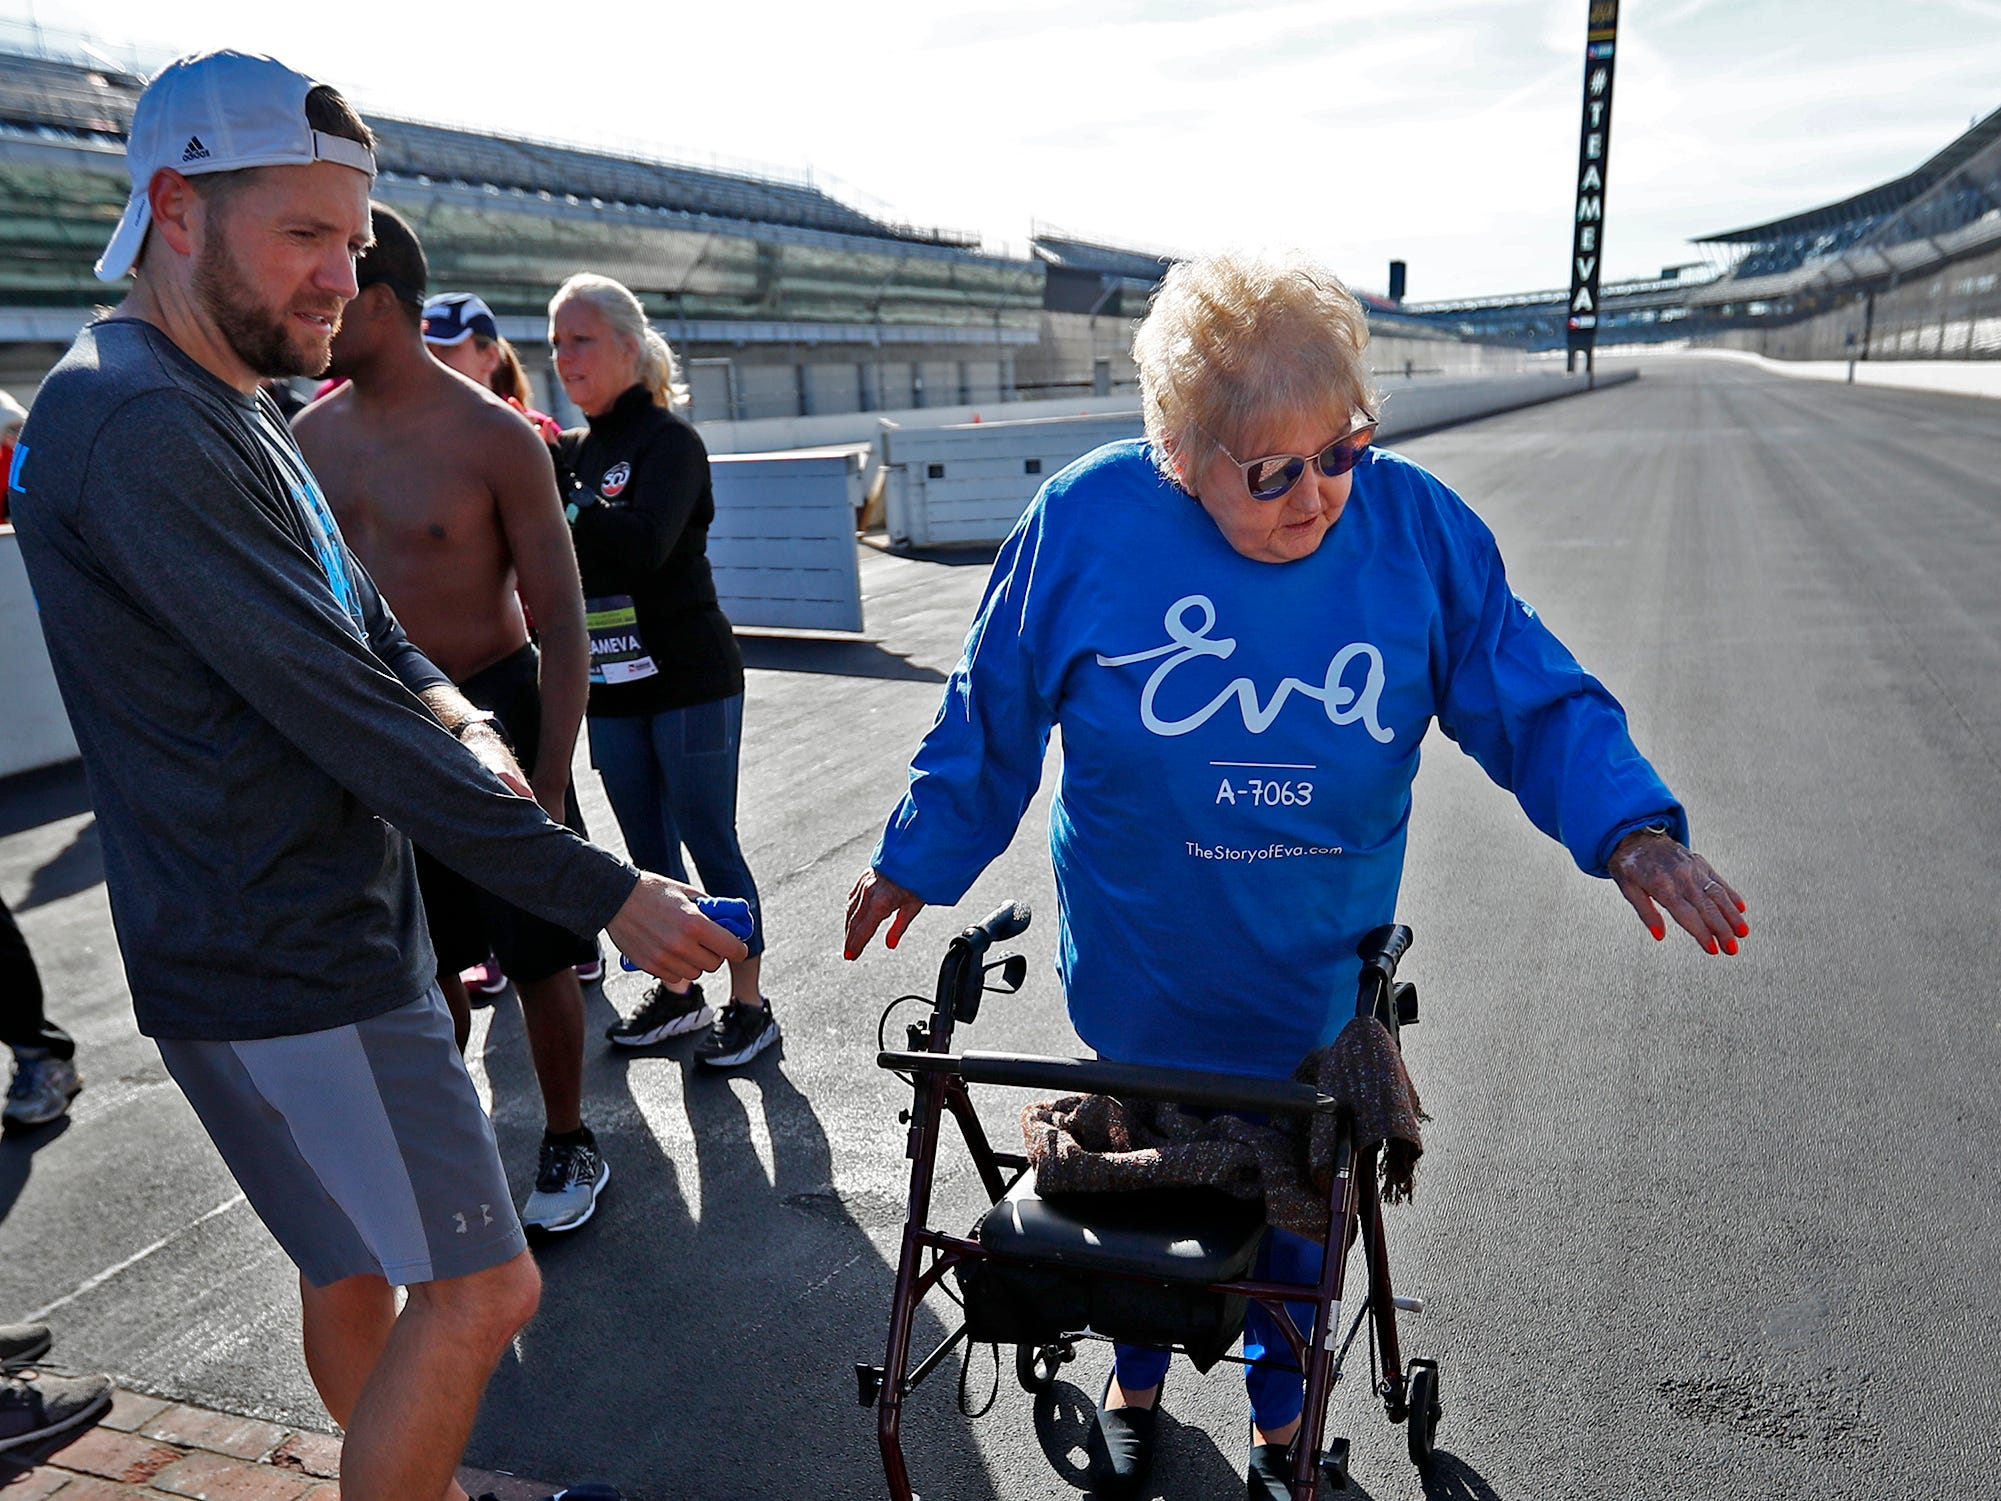 Holocaust survivor Eva Kor, rignt, and runner Brad Chaney, look at the Indianapolis Motor Speedway Yard of Bricks, Wednesday, Oct. 24, 2018, during the pace-setting run for the 2019 OneAmerica 500 Festival Mini-Marathon.  The 500 Festival will donate $1 to the CANDLES Holocaust Museum in Terre Haute for every mini-marathon participant who finishes the 2019 race in a better time than Team Eva.  Kor ran the very last of the relay race.